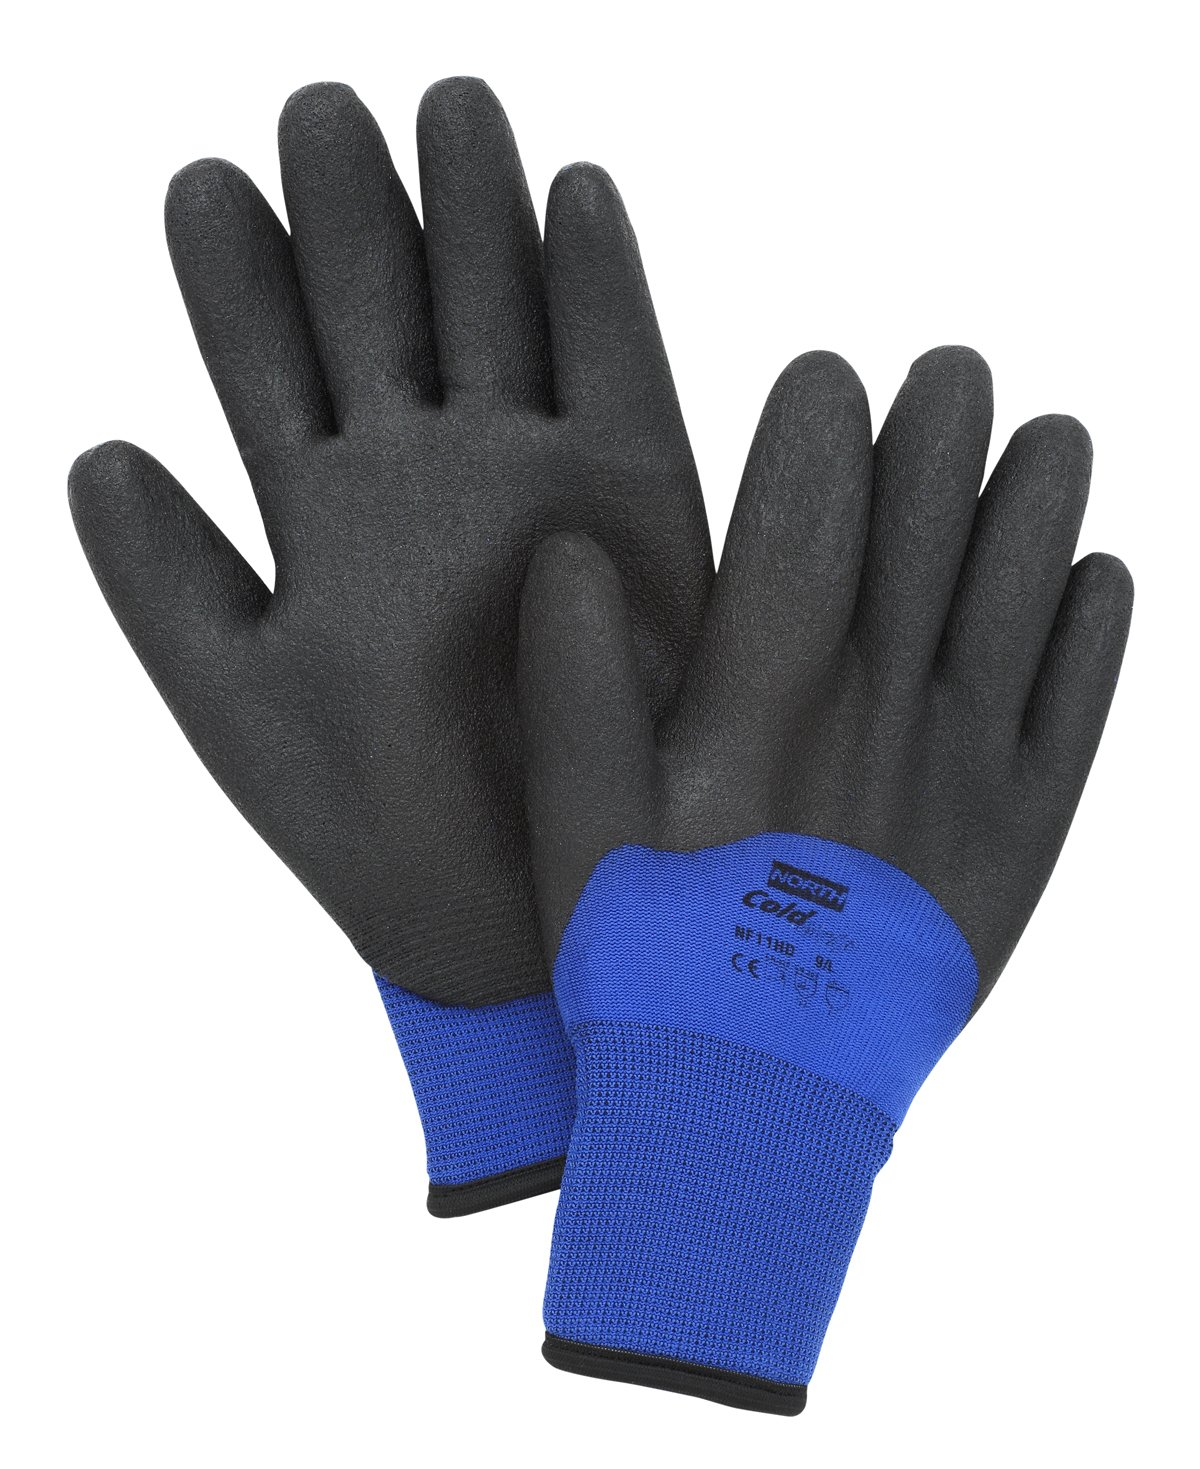 North by Honeywell NF11HD/10XL NorthFlex-Cold Grip Winter Gloves, X-Large, Blue/Black 068-NF11HD/10XL